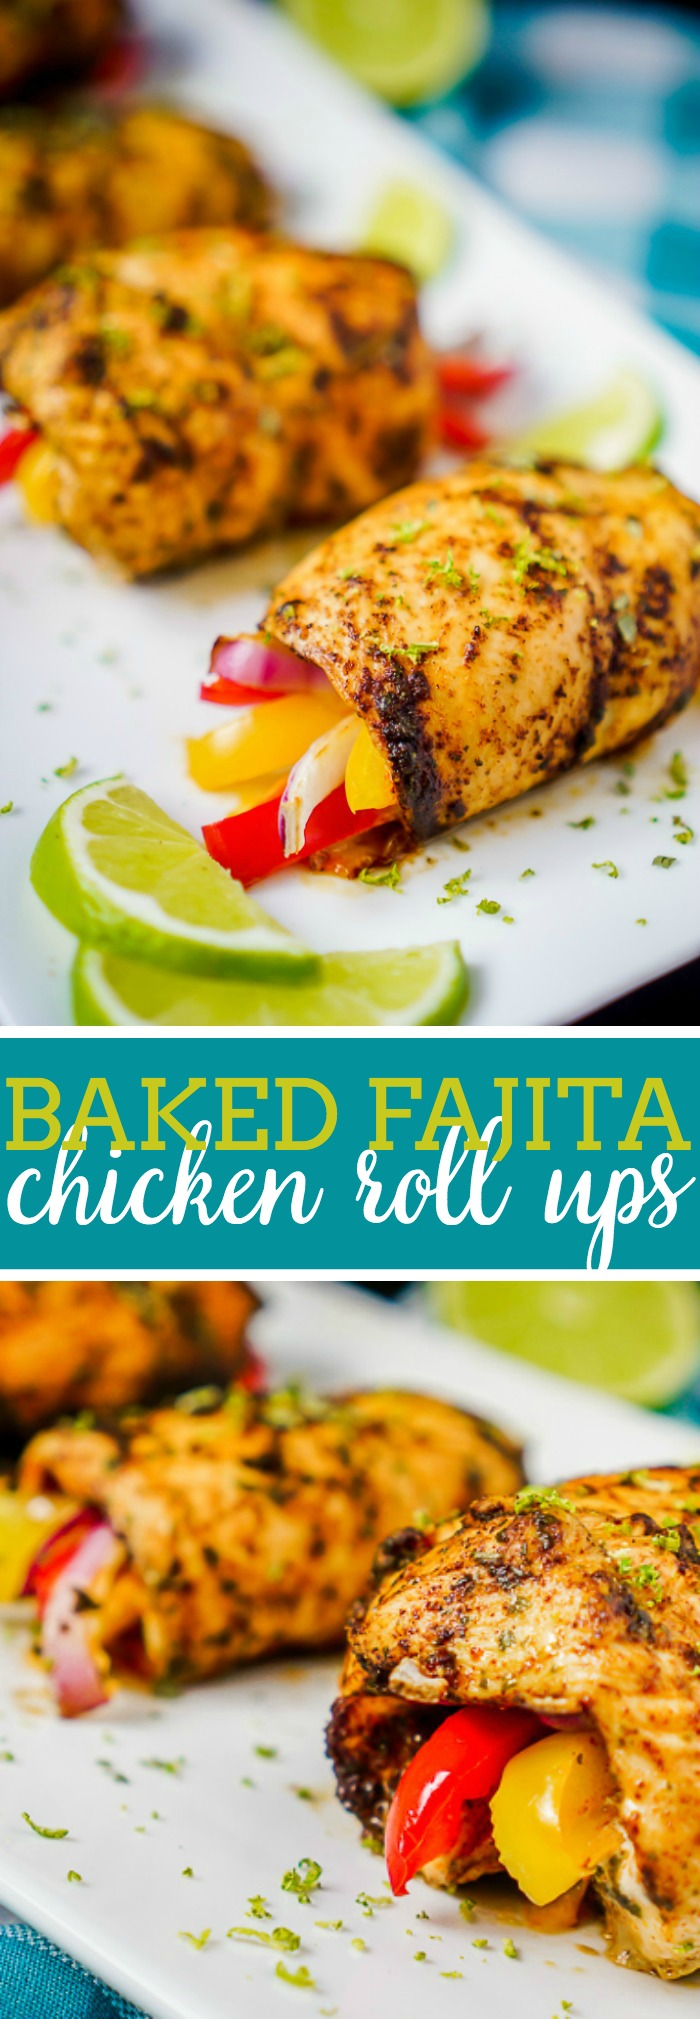 Baked Fajita Chicken Roll Ups - Make a tangy, zesty chicken recipe the whole family will love! Fabulous low carb dinner idea if you love chicken fajita recipes like we do! | The Love Nerds